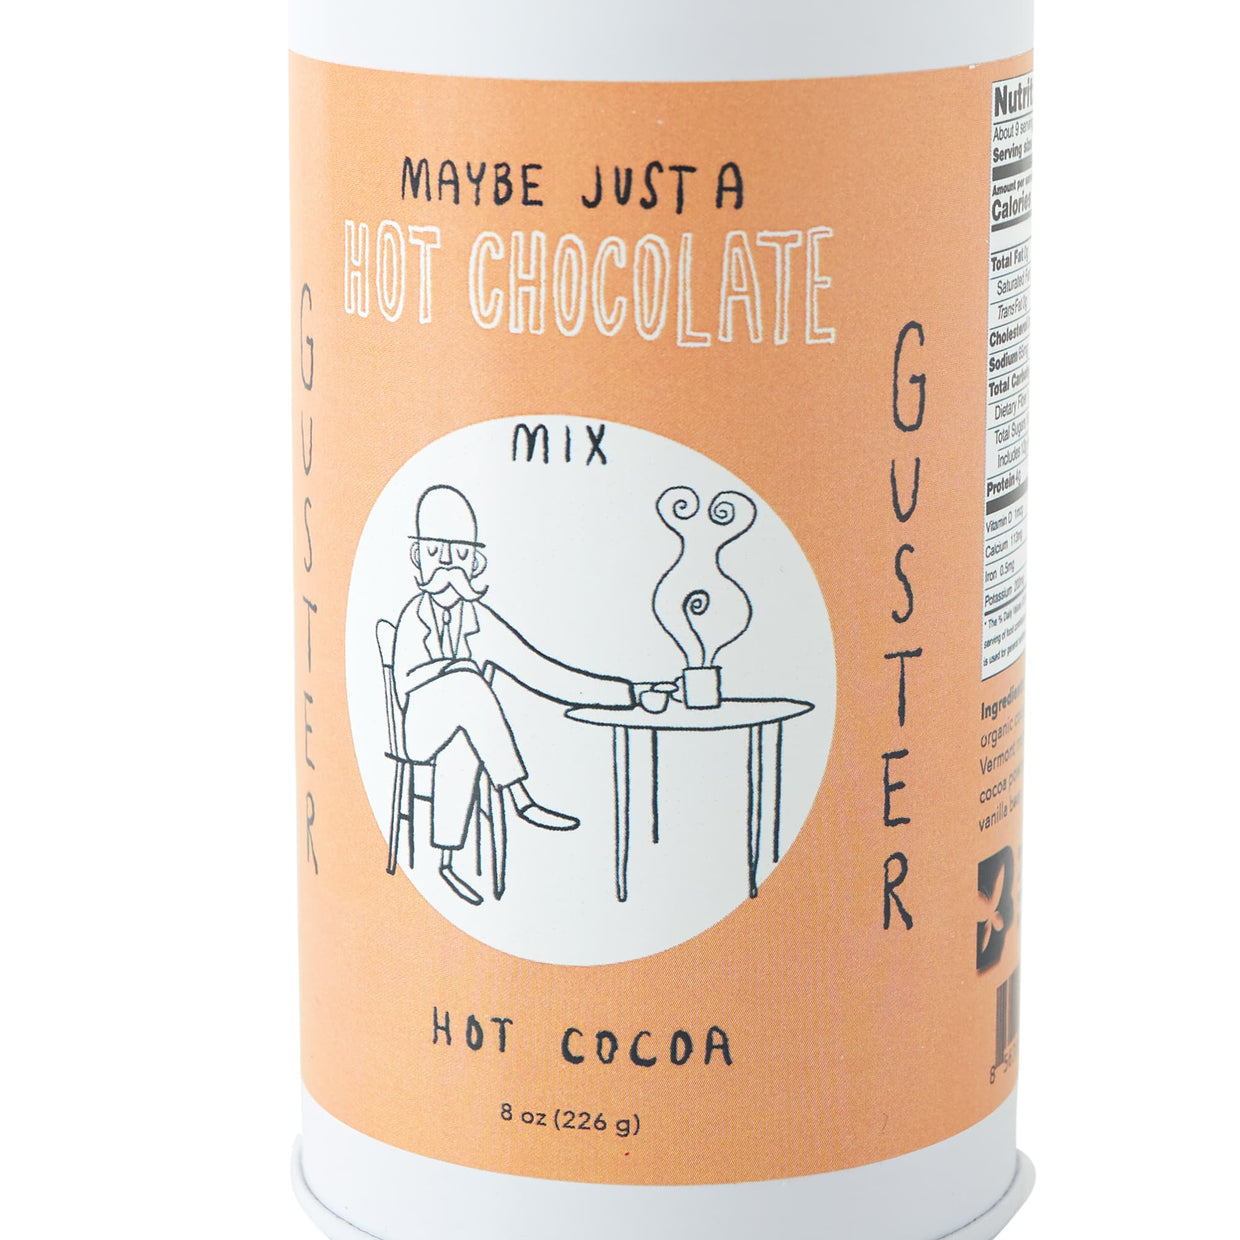 'Maybe Just A Hot Chocolate' Guster Hot Chocolate Mix